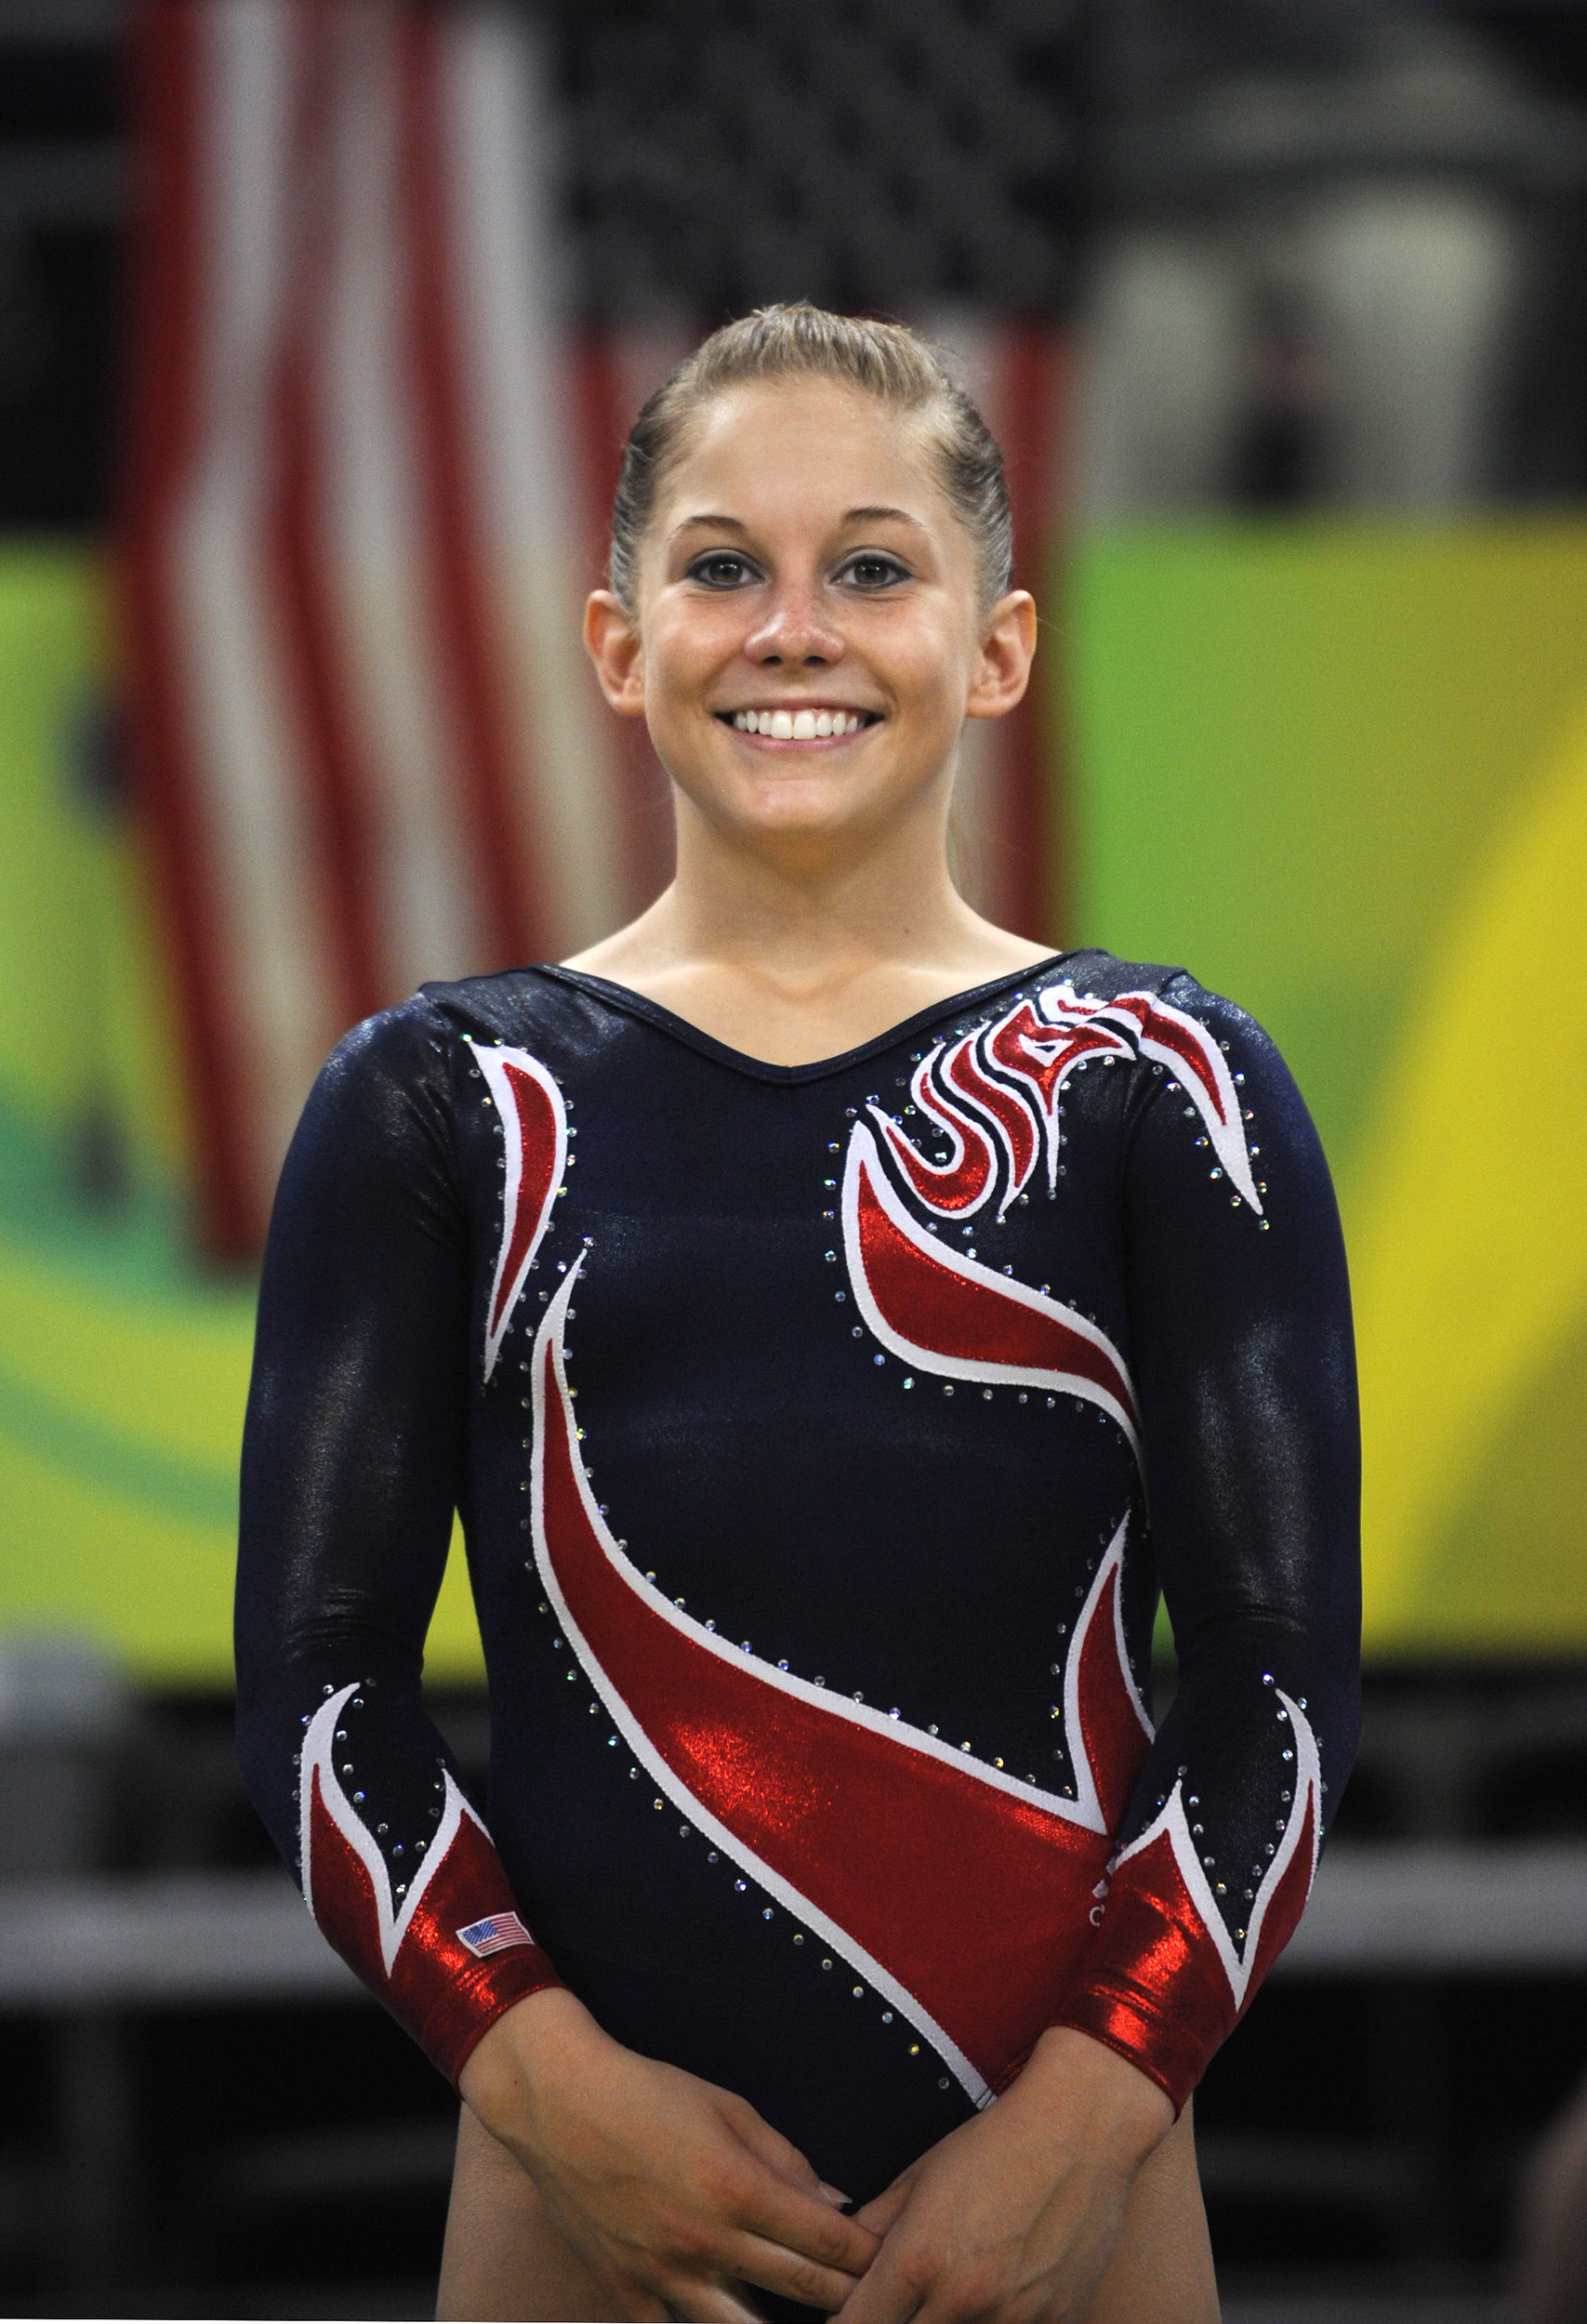 Shawn Johnson 4 Olympic medals in gymnastics Shawn Johnson 4 Olympic medals in gymnastics new foto